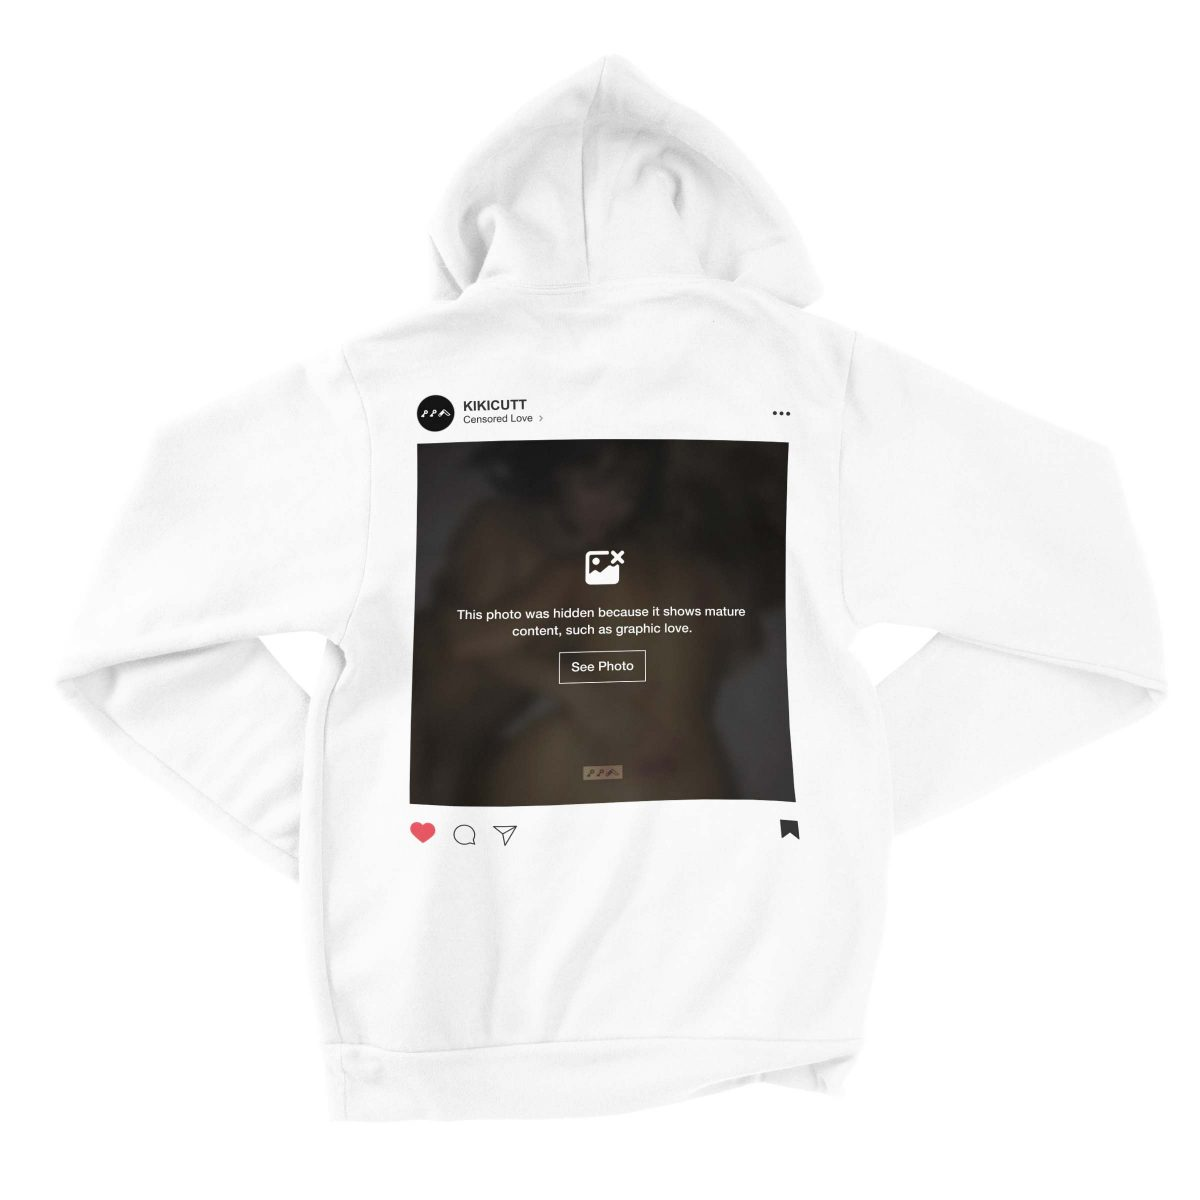 INSTAGRAM CENSORED hoodies by kikicutt sweatshirt store